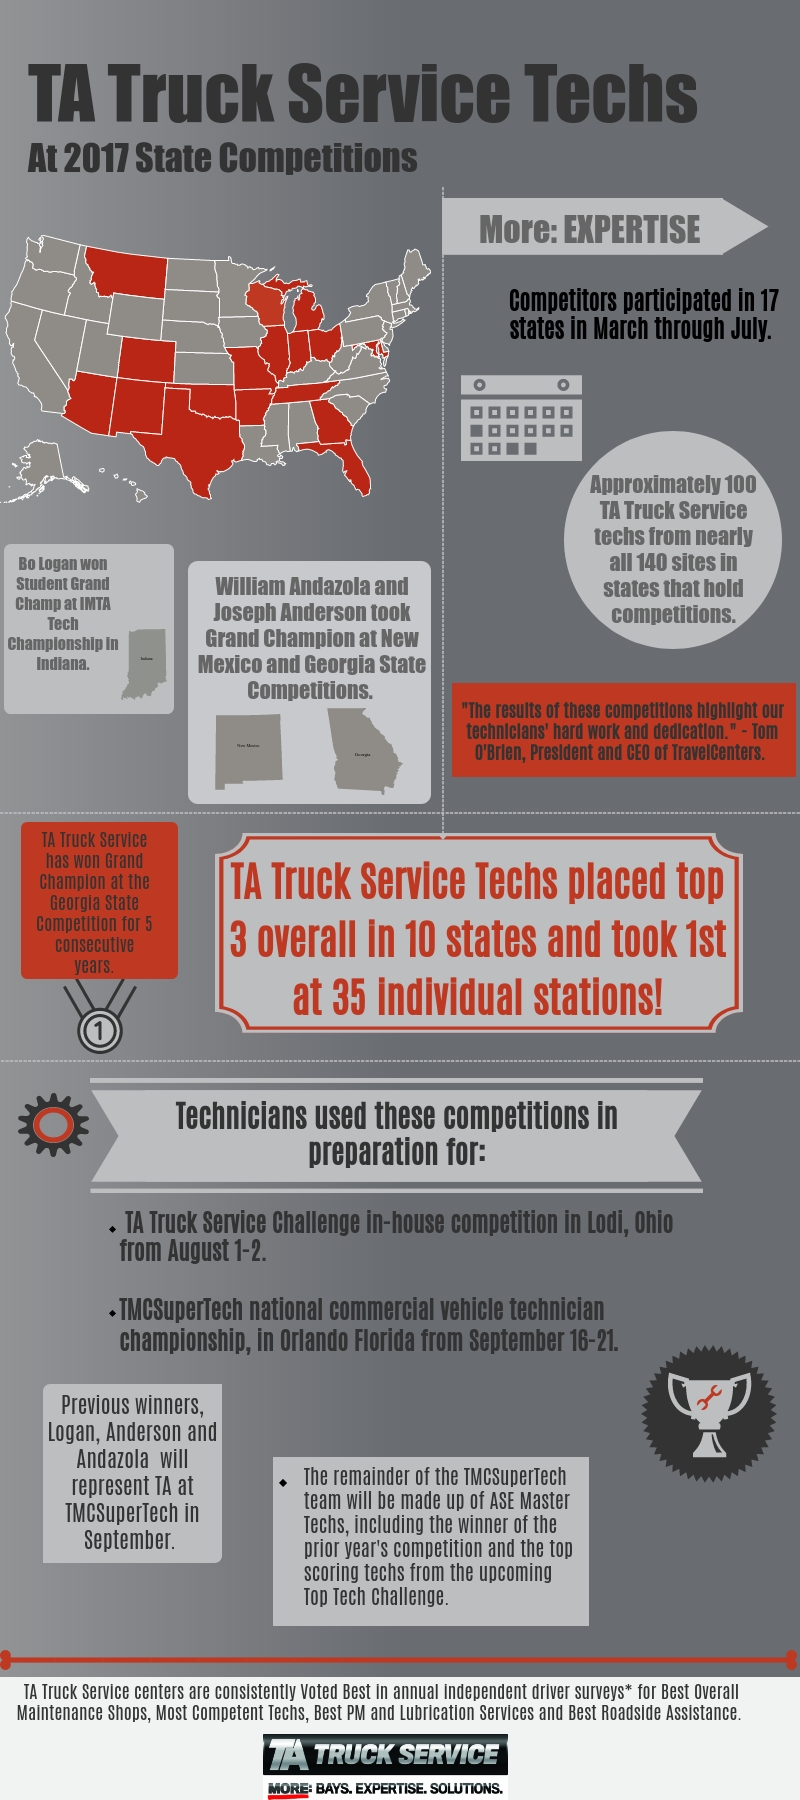 TA Truck Service Tech State Competitions